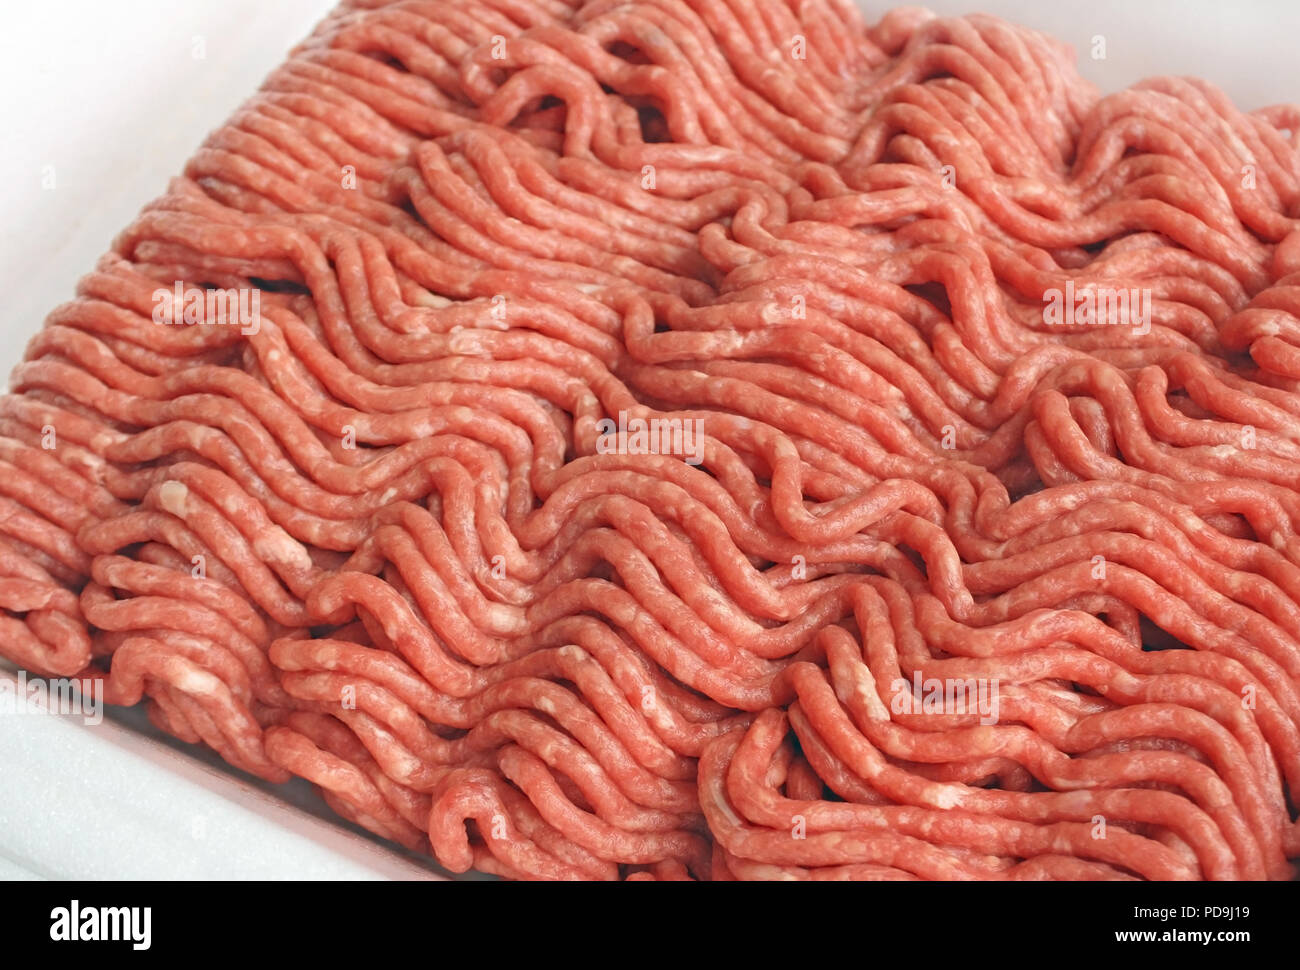 Close up of Lean ground beef - Stock Image